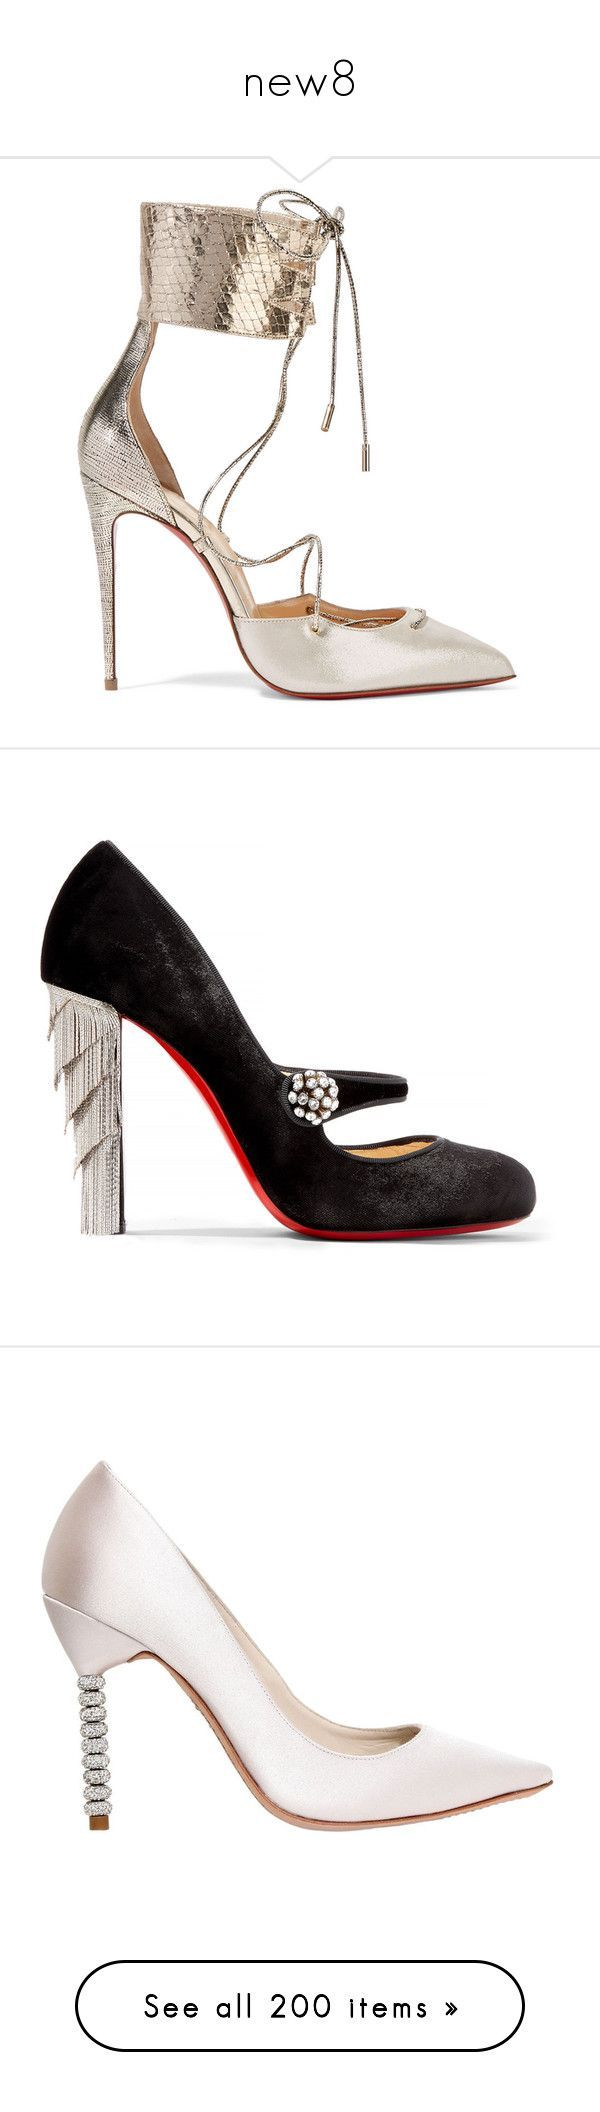 new8 by jojogena ❤ liked on Polyvore featuring shoes, pumps, heels, christian louboutin, sandals, christian louboutin shoes, evening shoes, metallic pumps, christian louboutin pumps and high heel stilettos